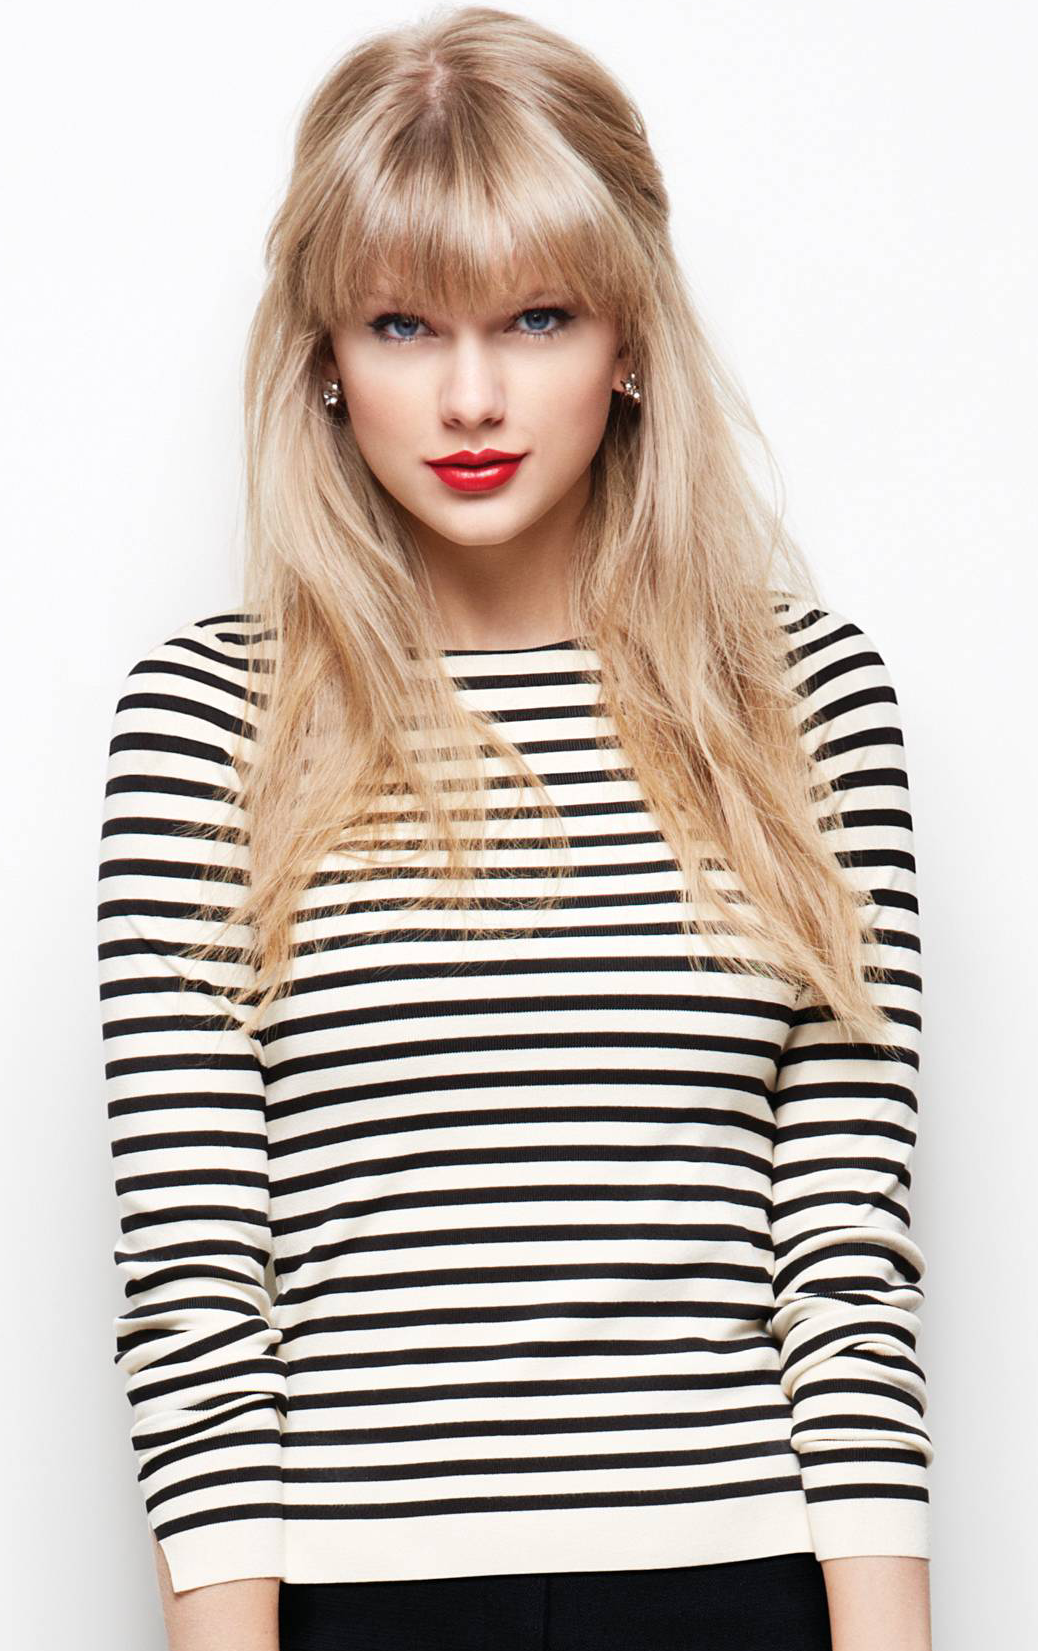 Taylor Swift Inspired Makeup Tutorial: One Direction Wiki